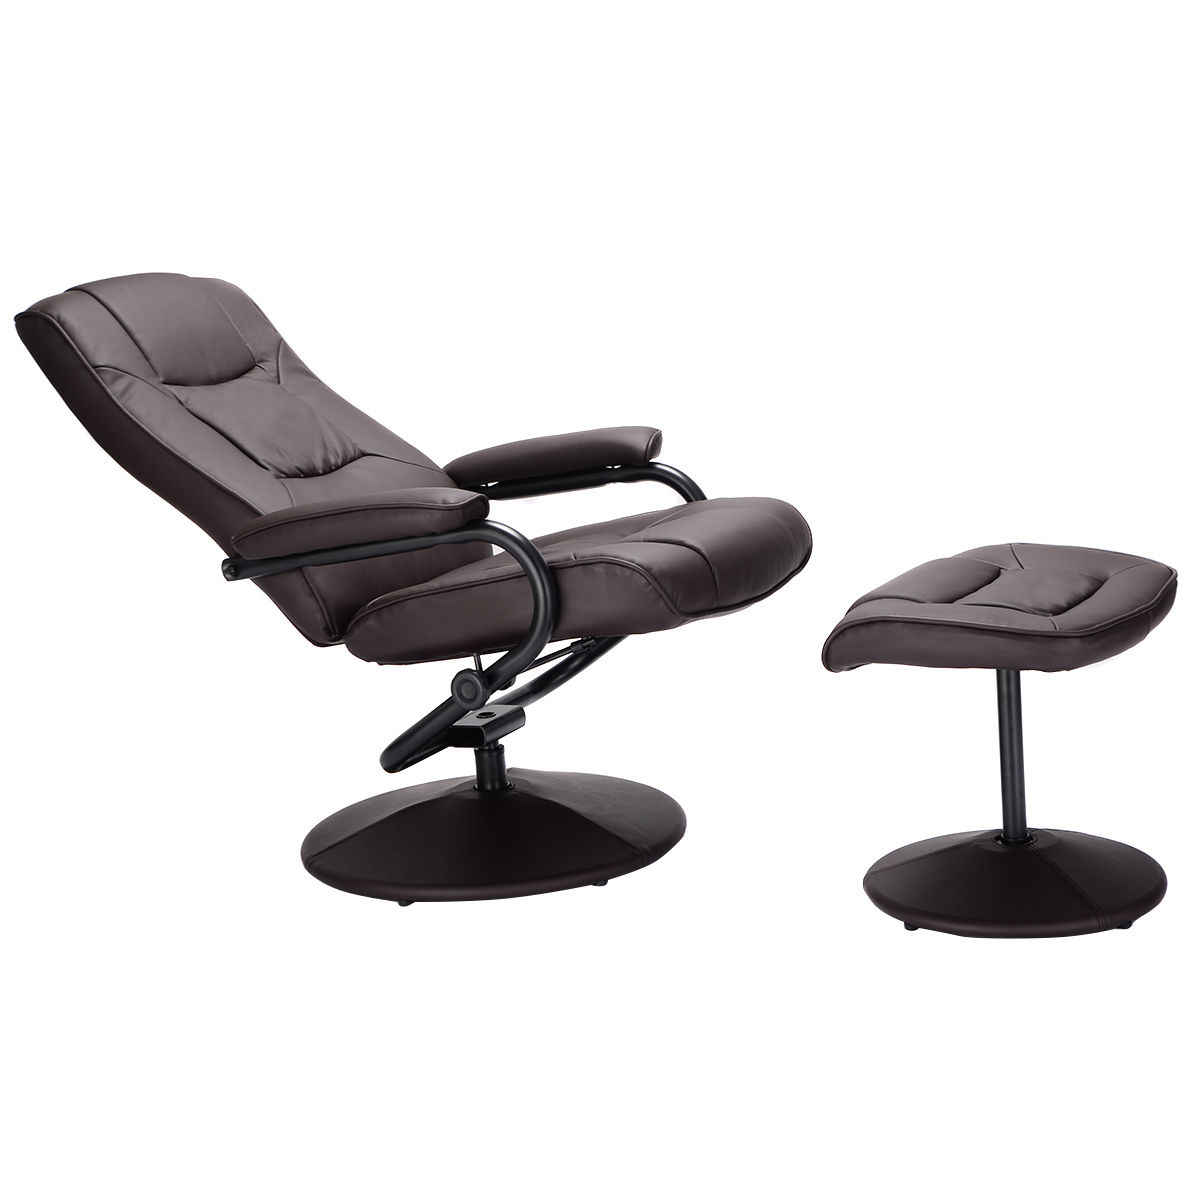 Giantex Recliner Chair 360 Degree Swivel Armchair Modern Lounge Seat With Footrest Stool Ottoman Home Furniture Hw51430bn